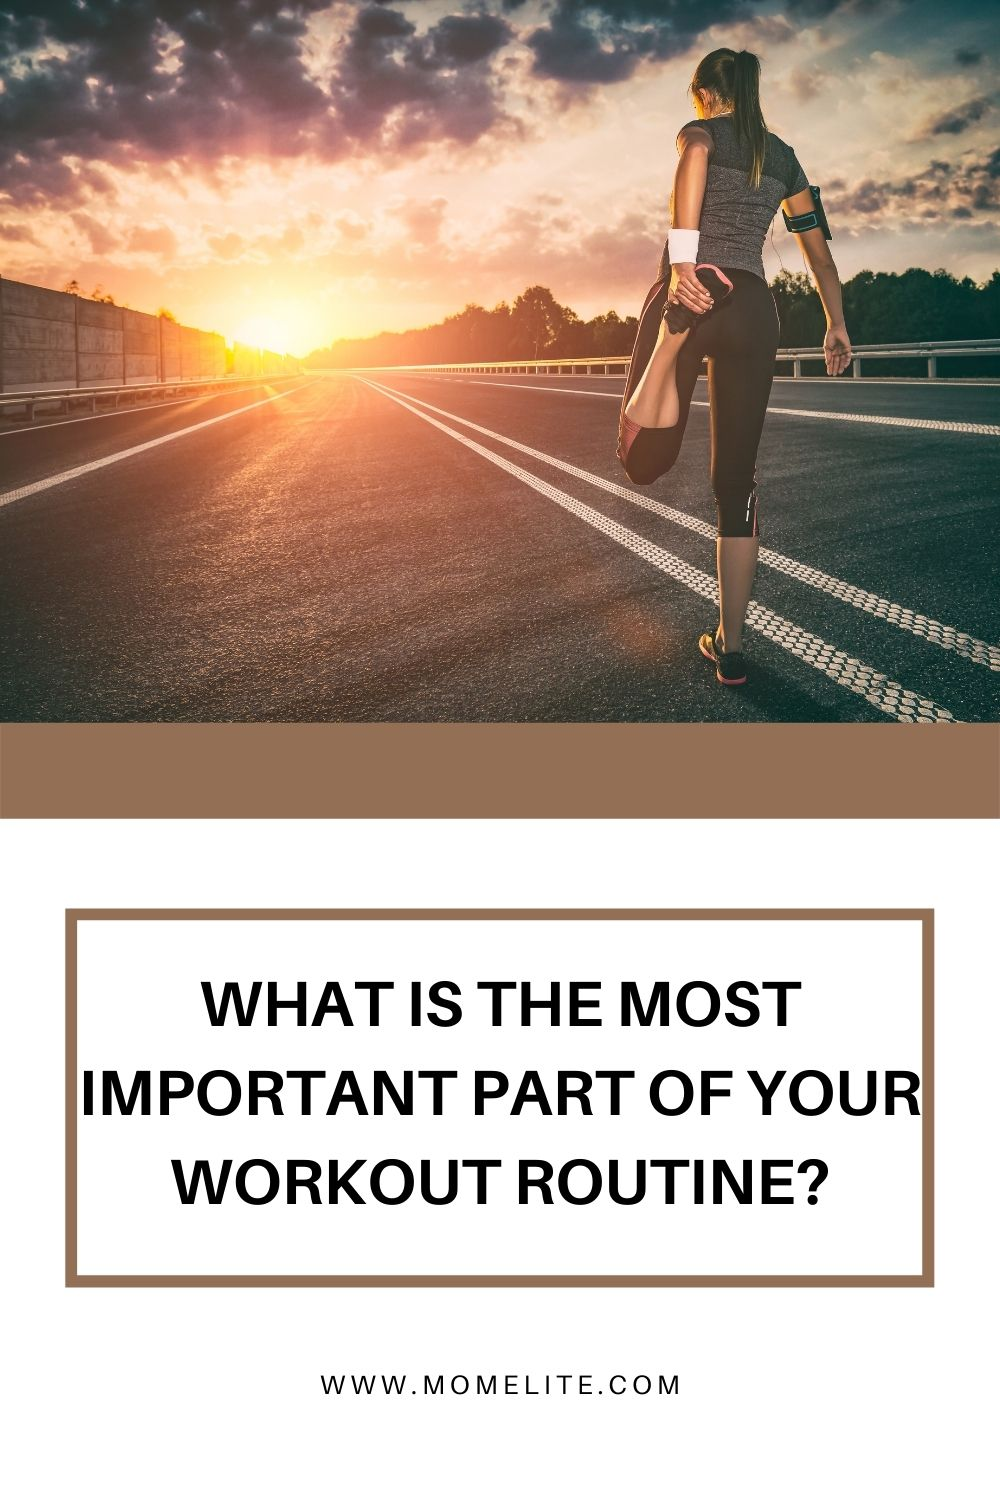 WHAT IS THE MOST IMPORTANT PART OF YOUR WORKOUT ROUTINE?